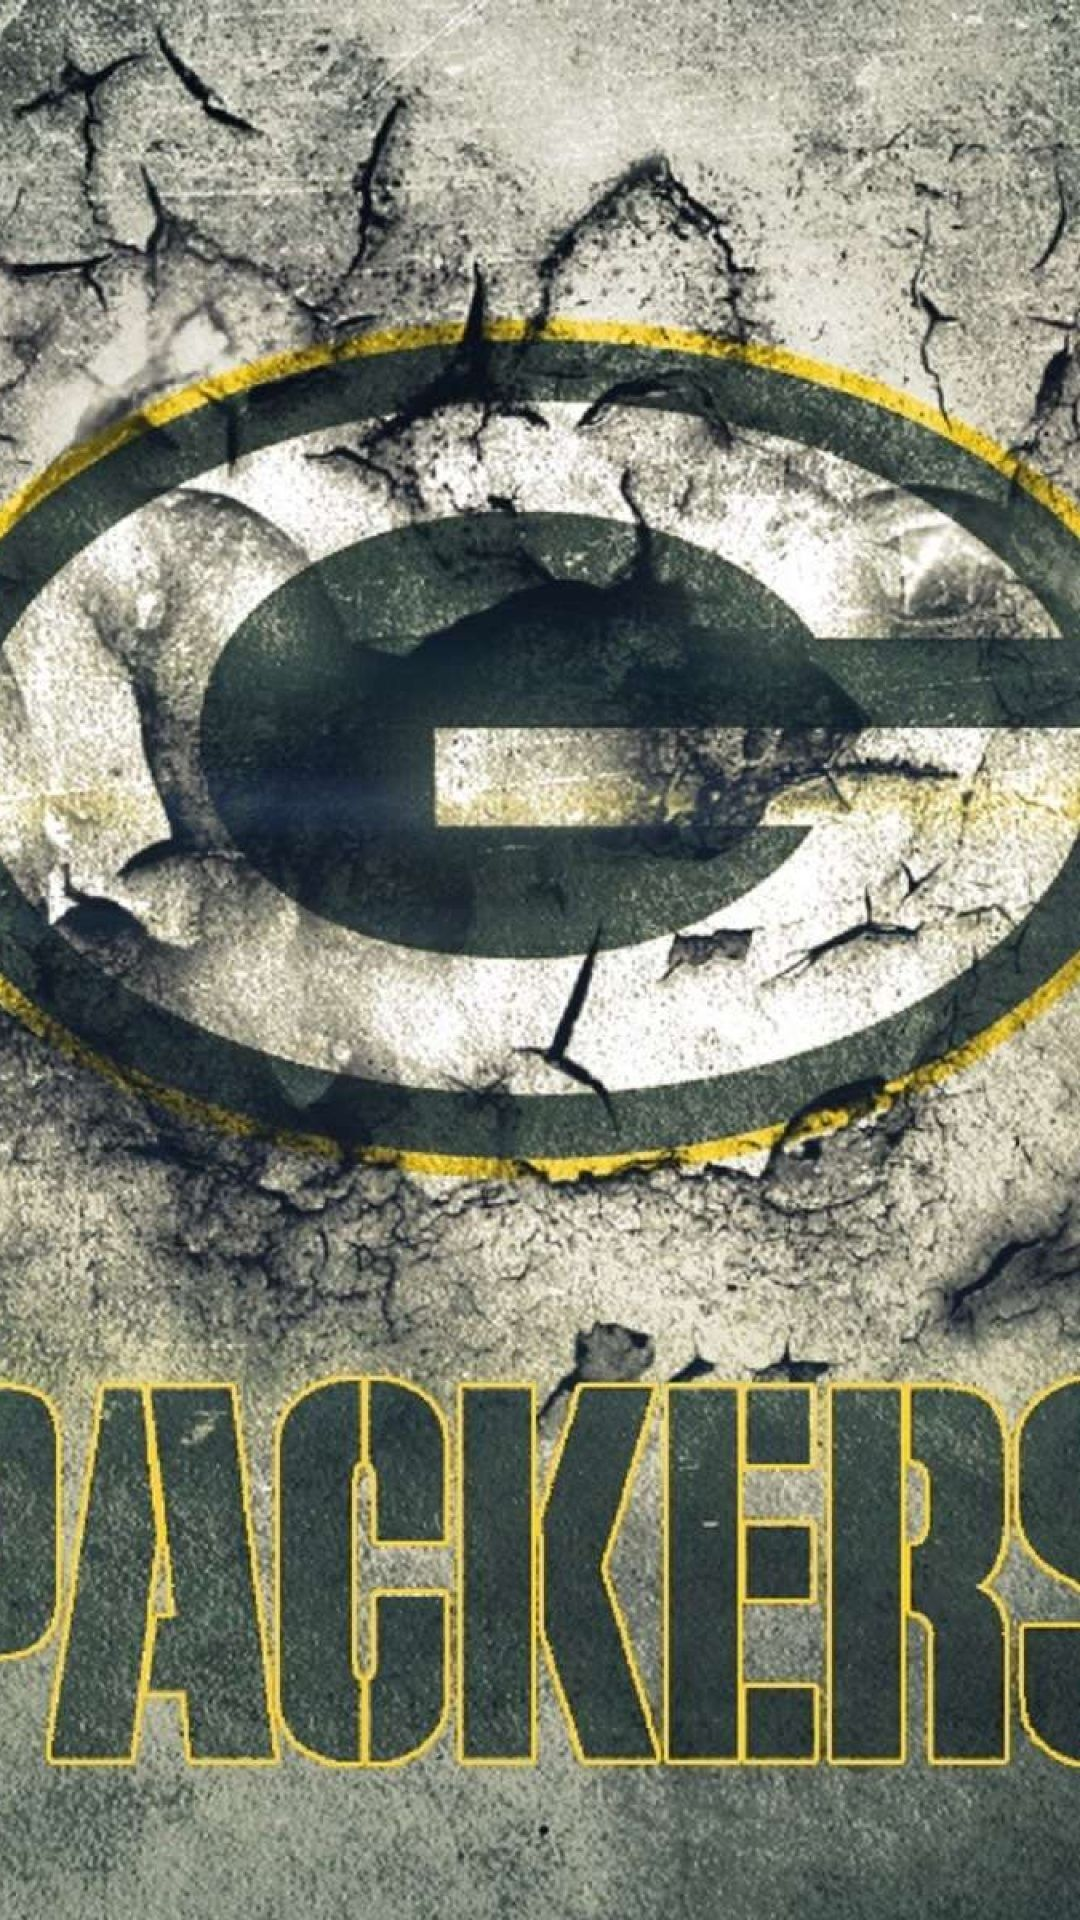 Logo Green Bay Packers Iphone Background Games Wallpapers Ideas In 2020 Green Bay Packers Iphone Background Green Bay